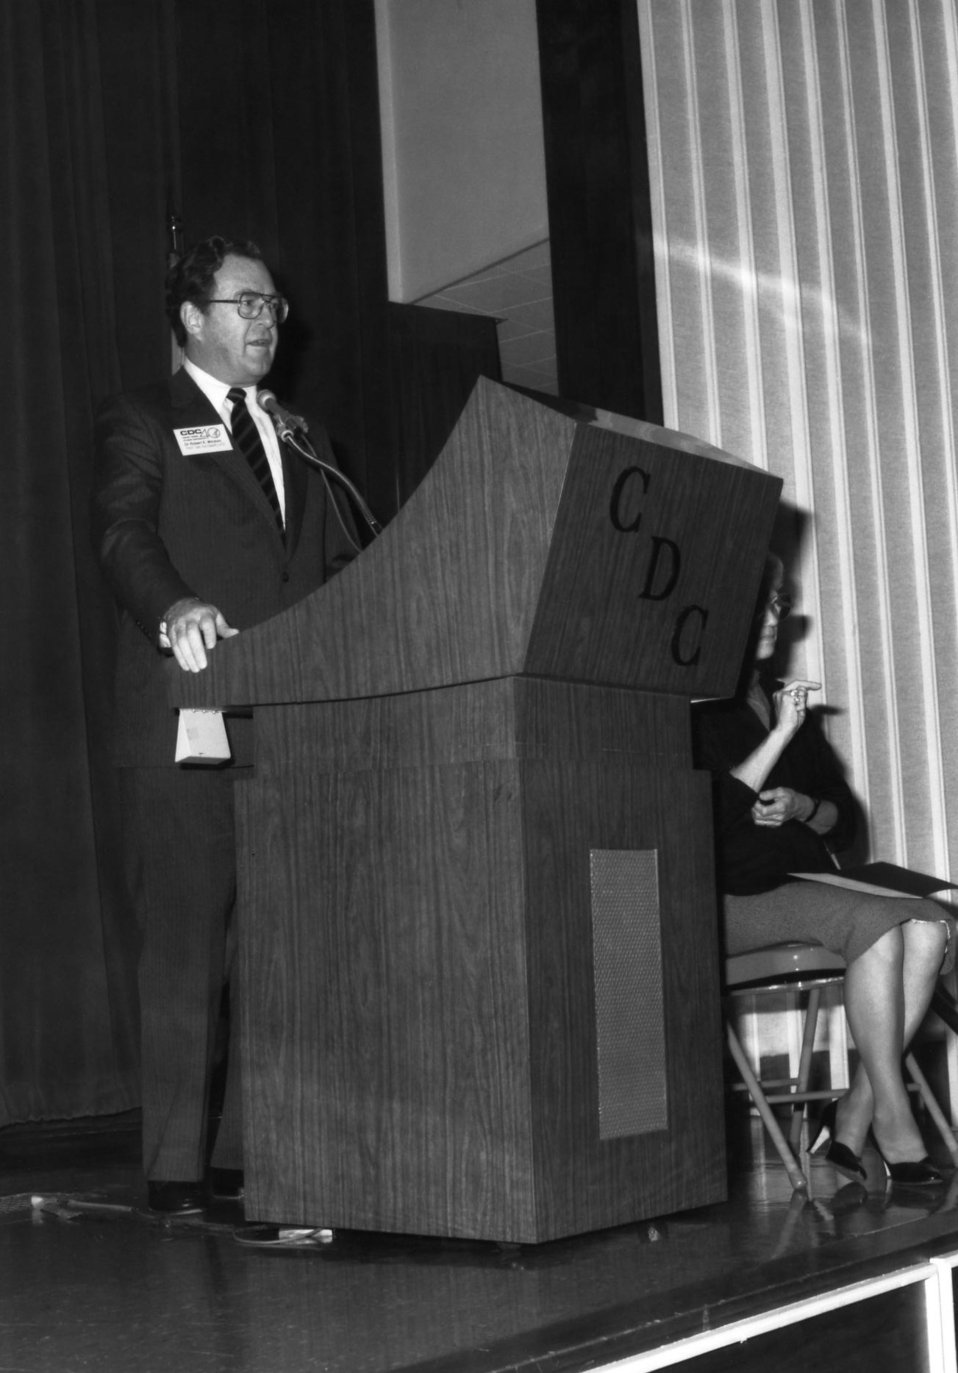 This photograph showed the former Assistant Secretary for Health, Robert E. Windom, M.D., speaking to Centers for Disease Control employees